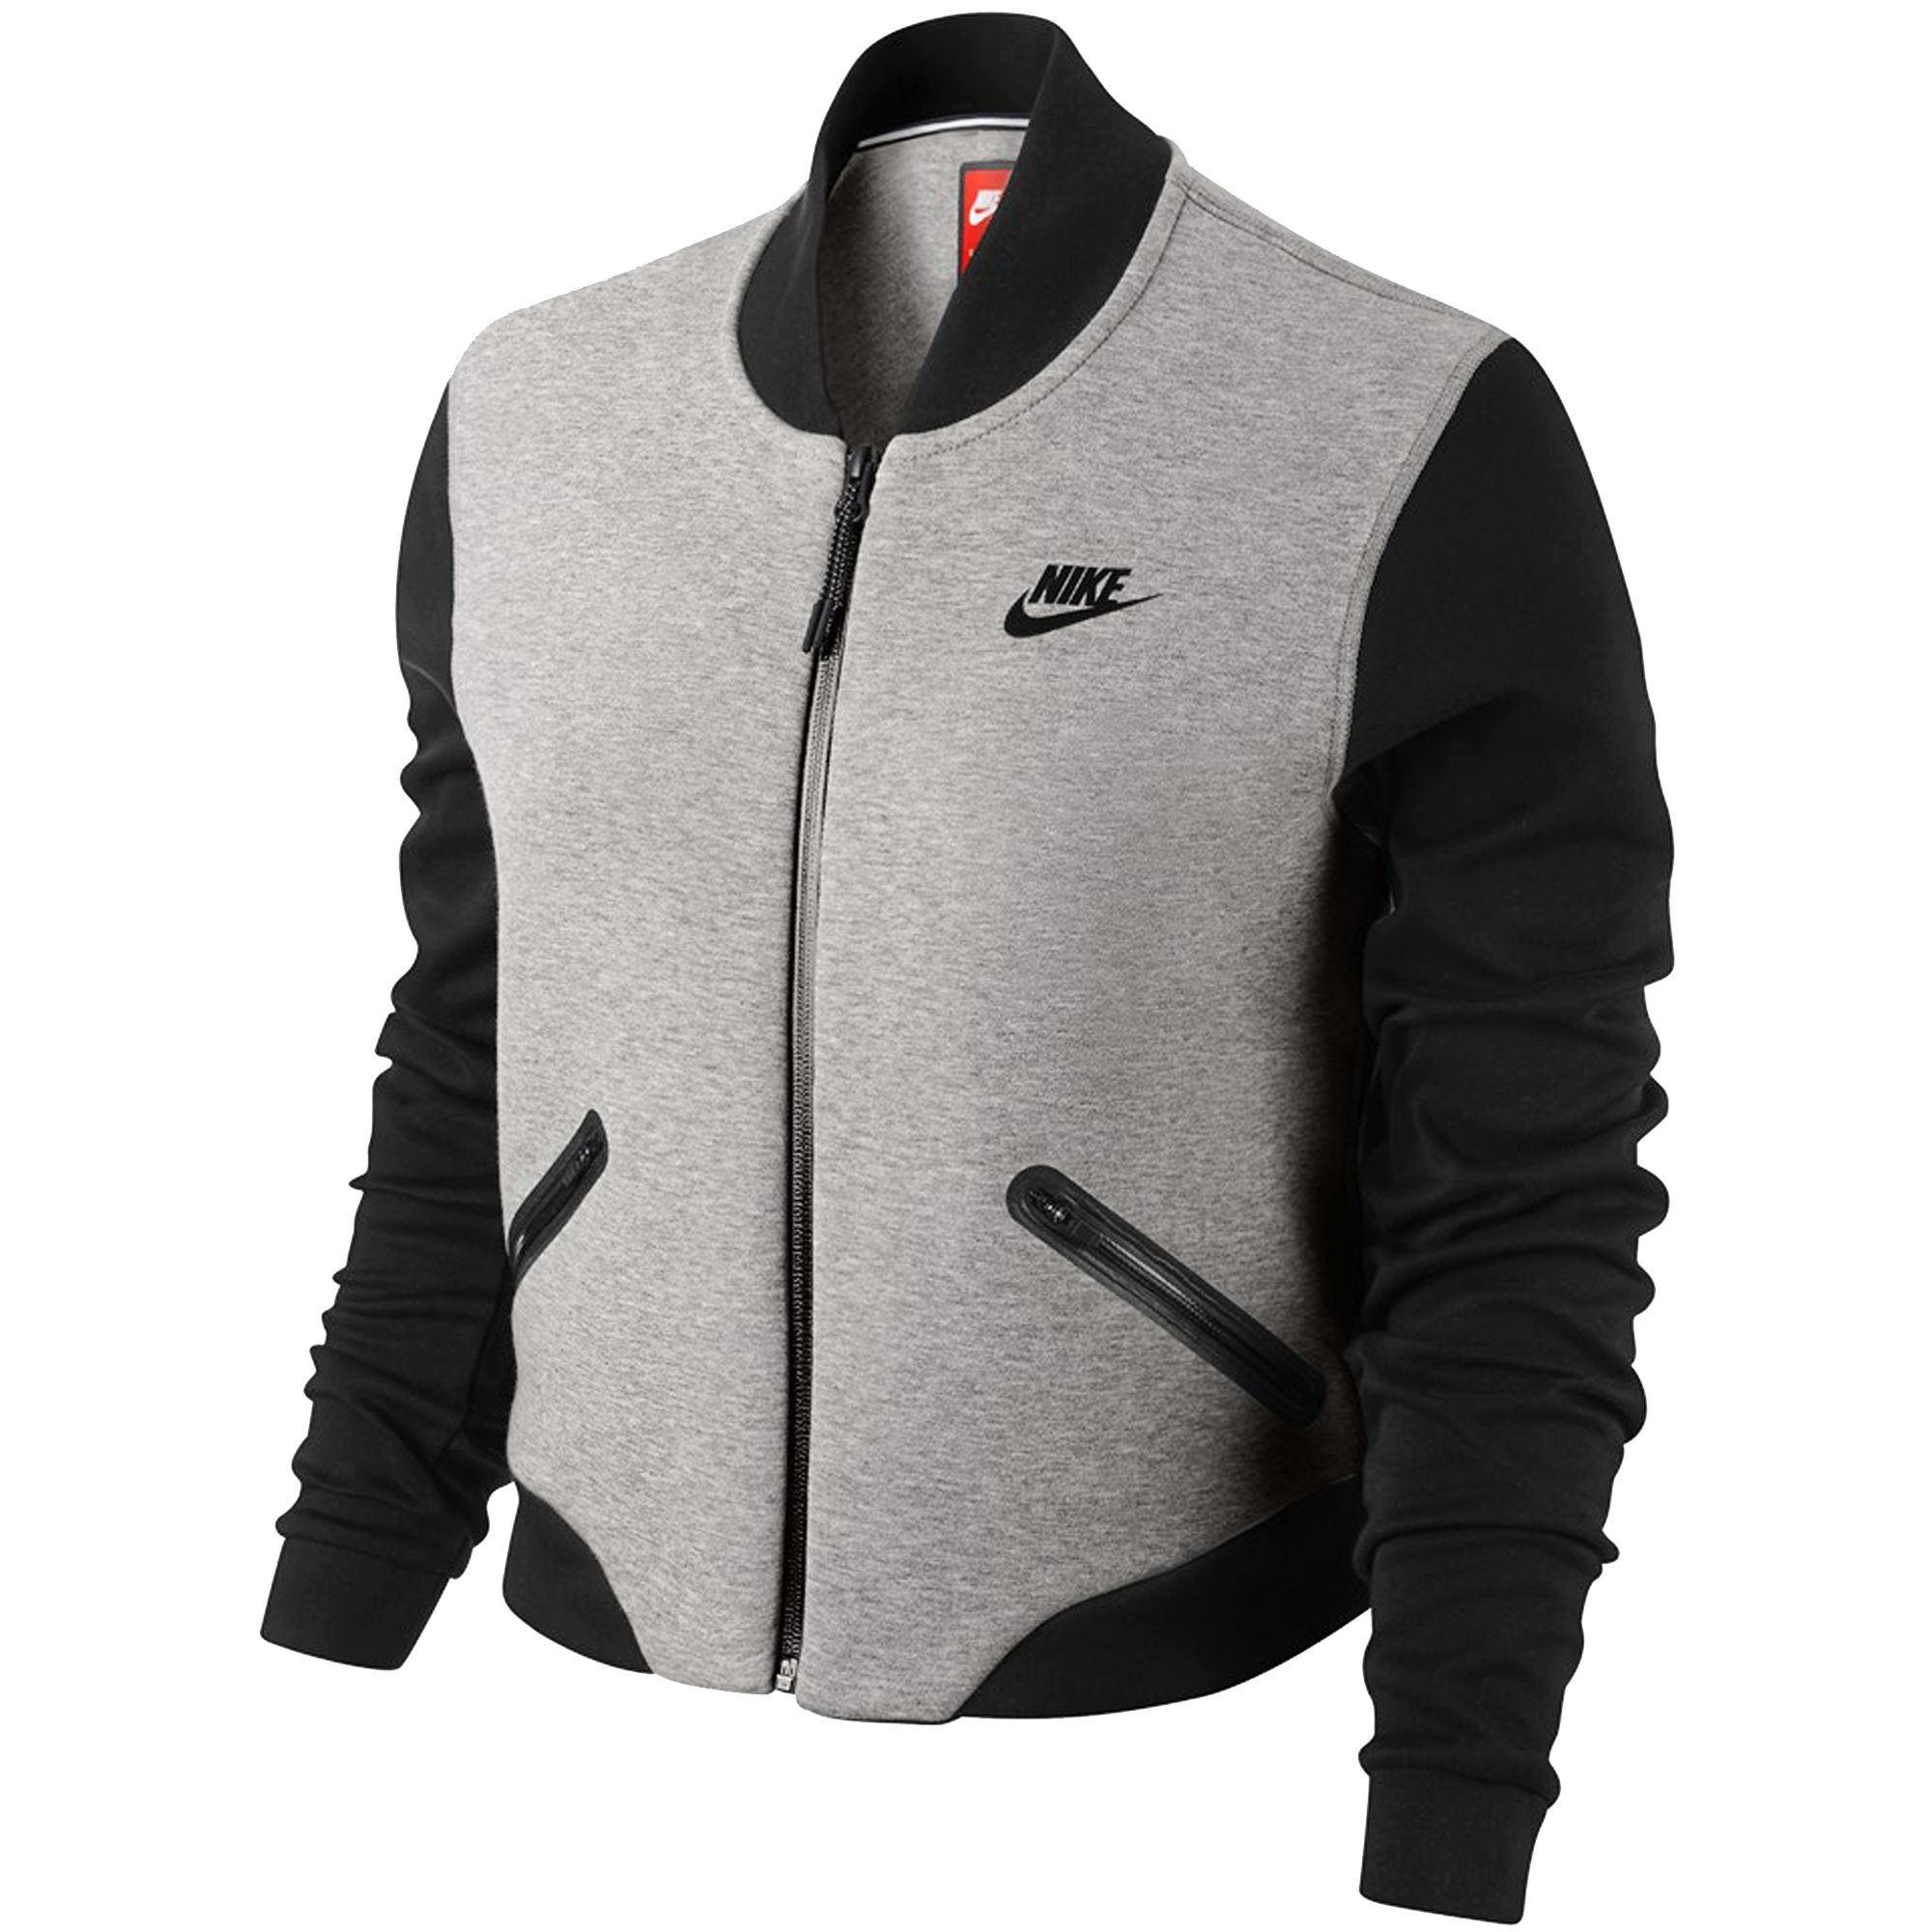 Tech CeketSport JacketsY Bomber Jacket Nike Fleece wuTOkXZPi